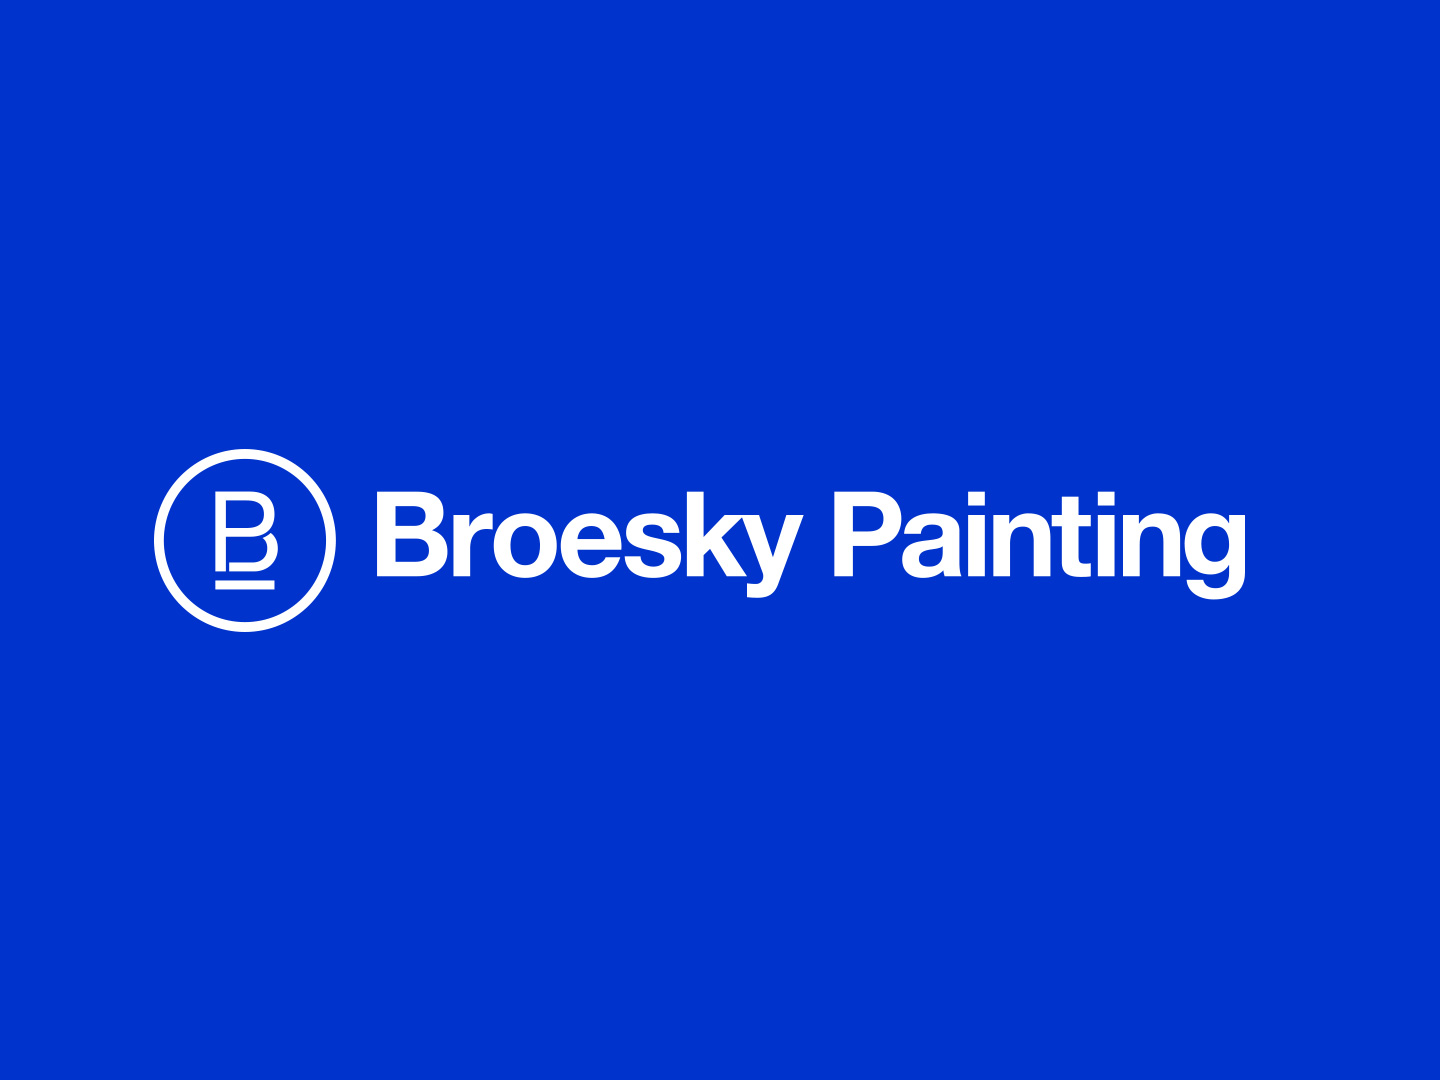 Broesky Painting logo